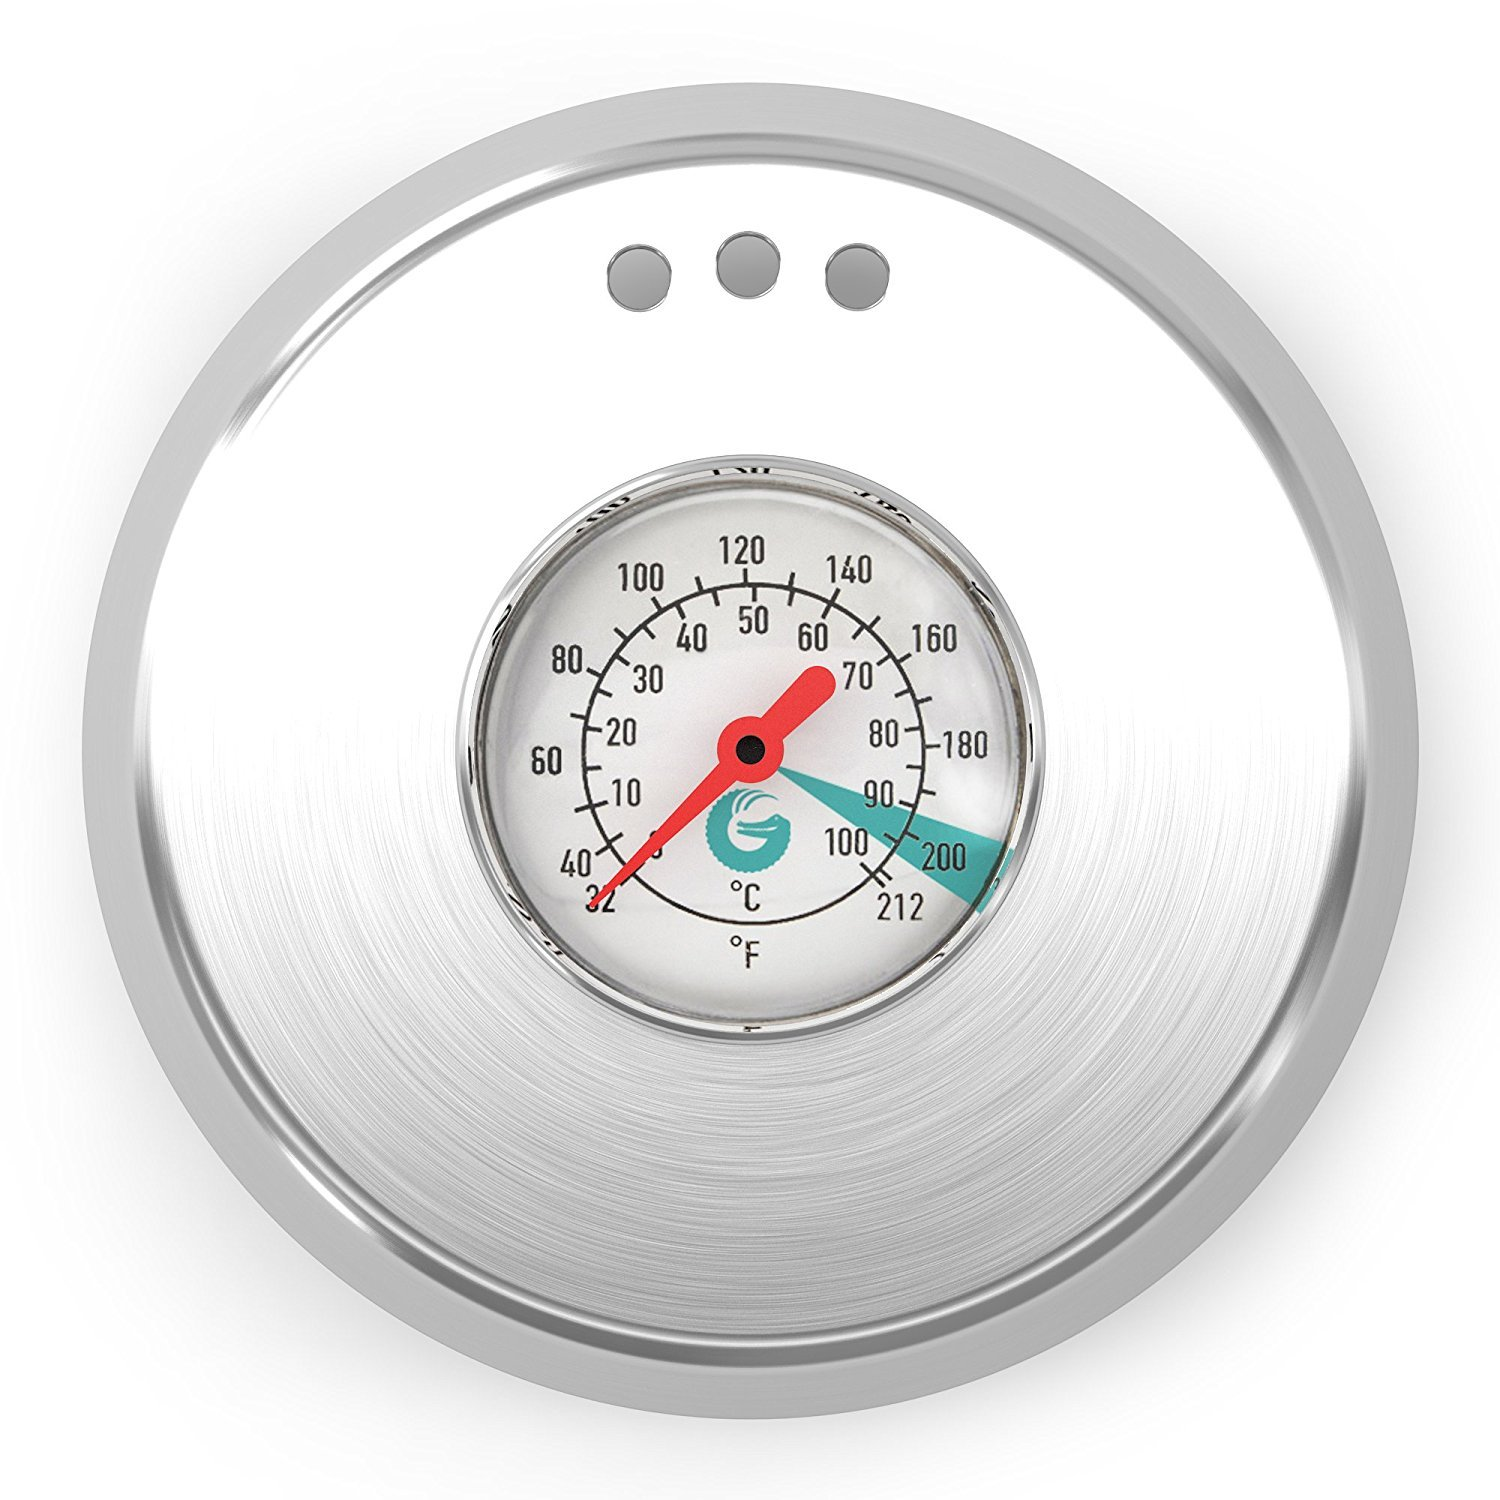 Thermometer Lid For Pour Over Kettles - Never Scald Your Beans Again by Coffee Gator   B01GBR3SZO